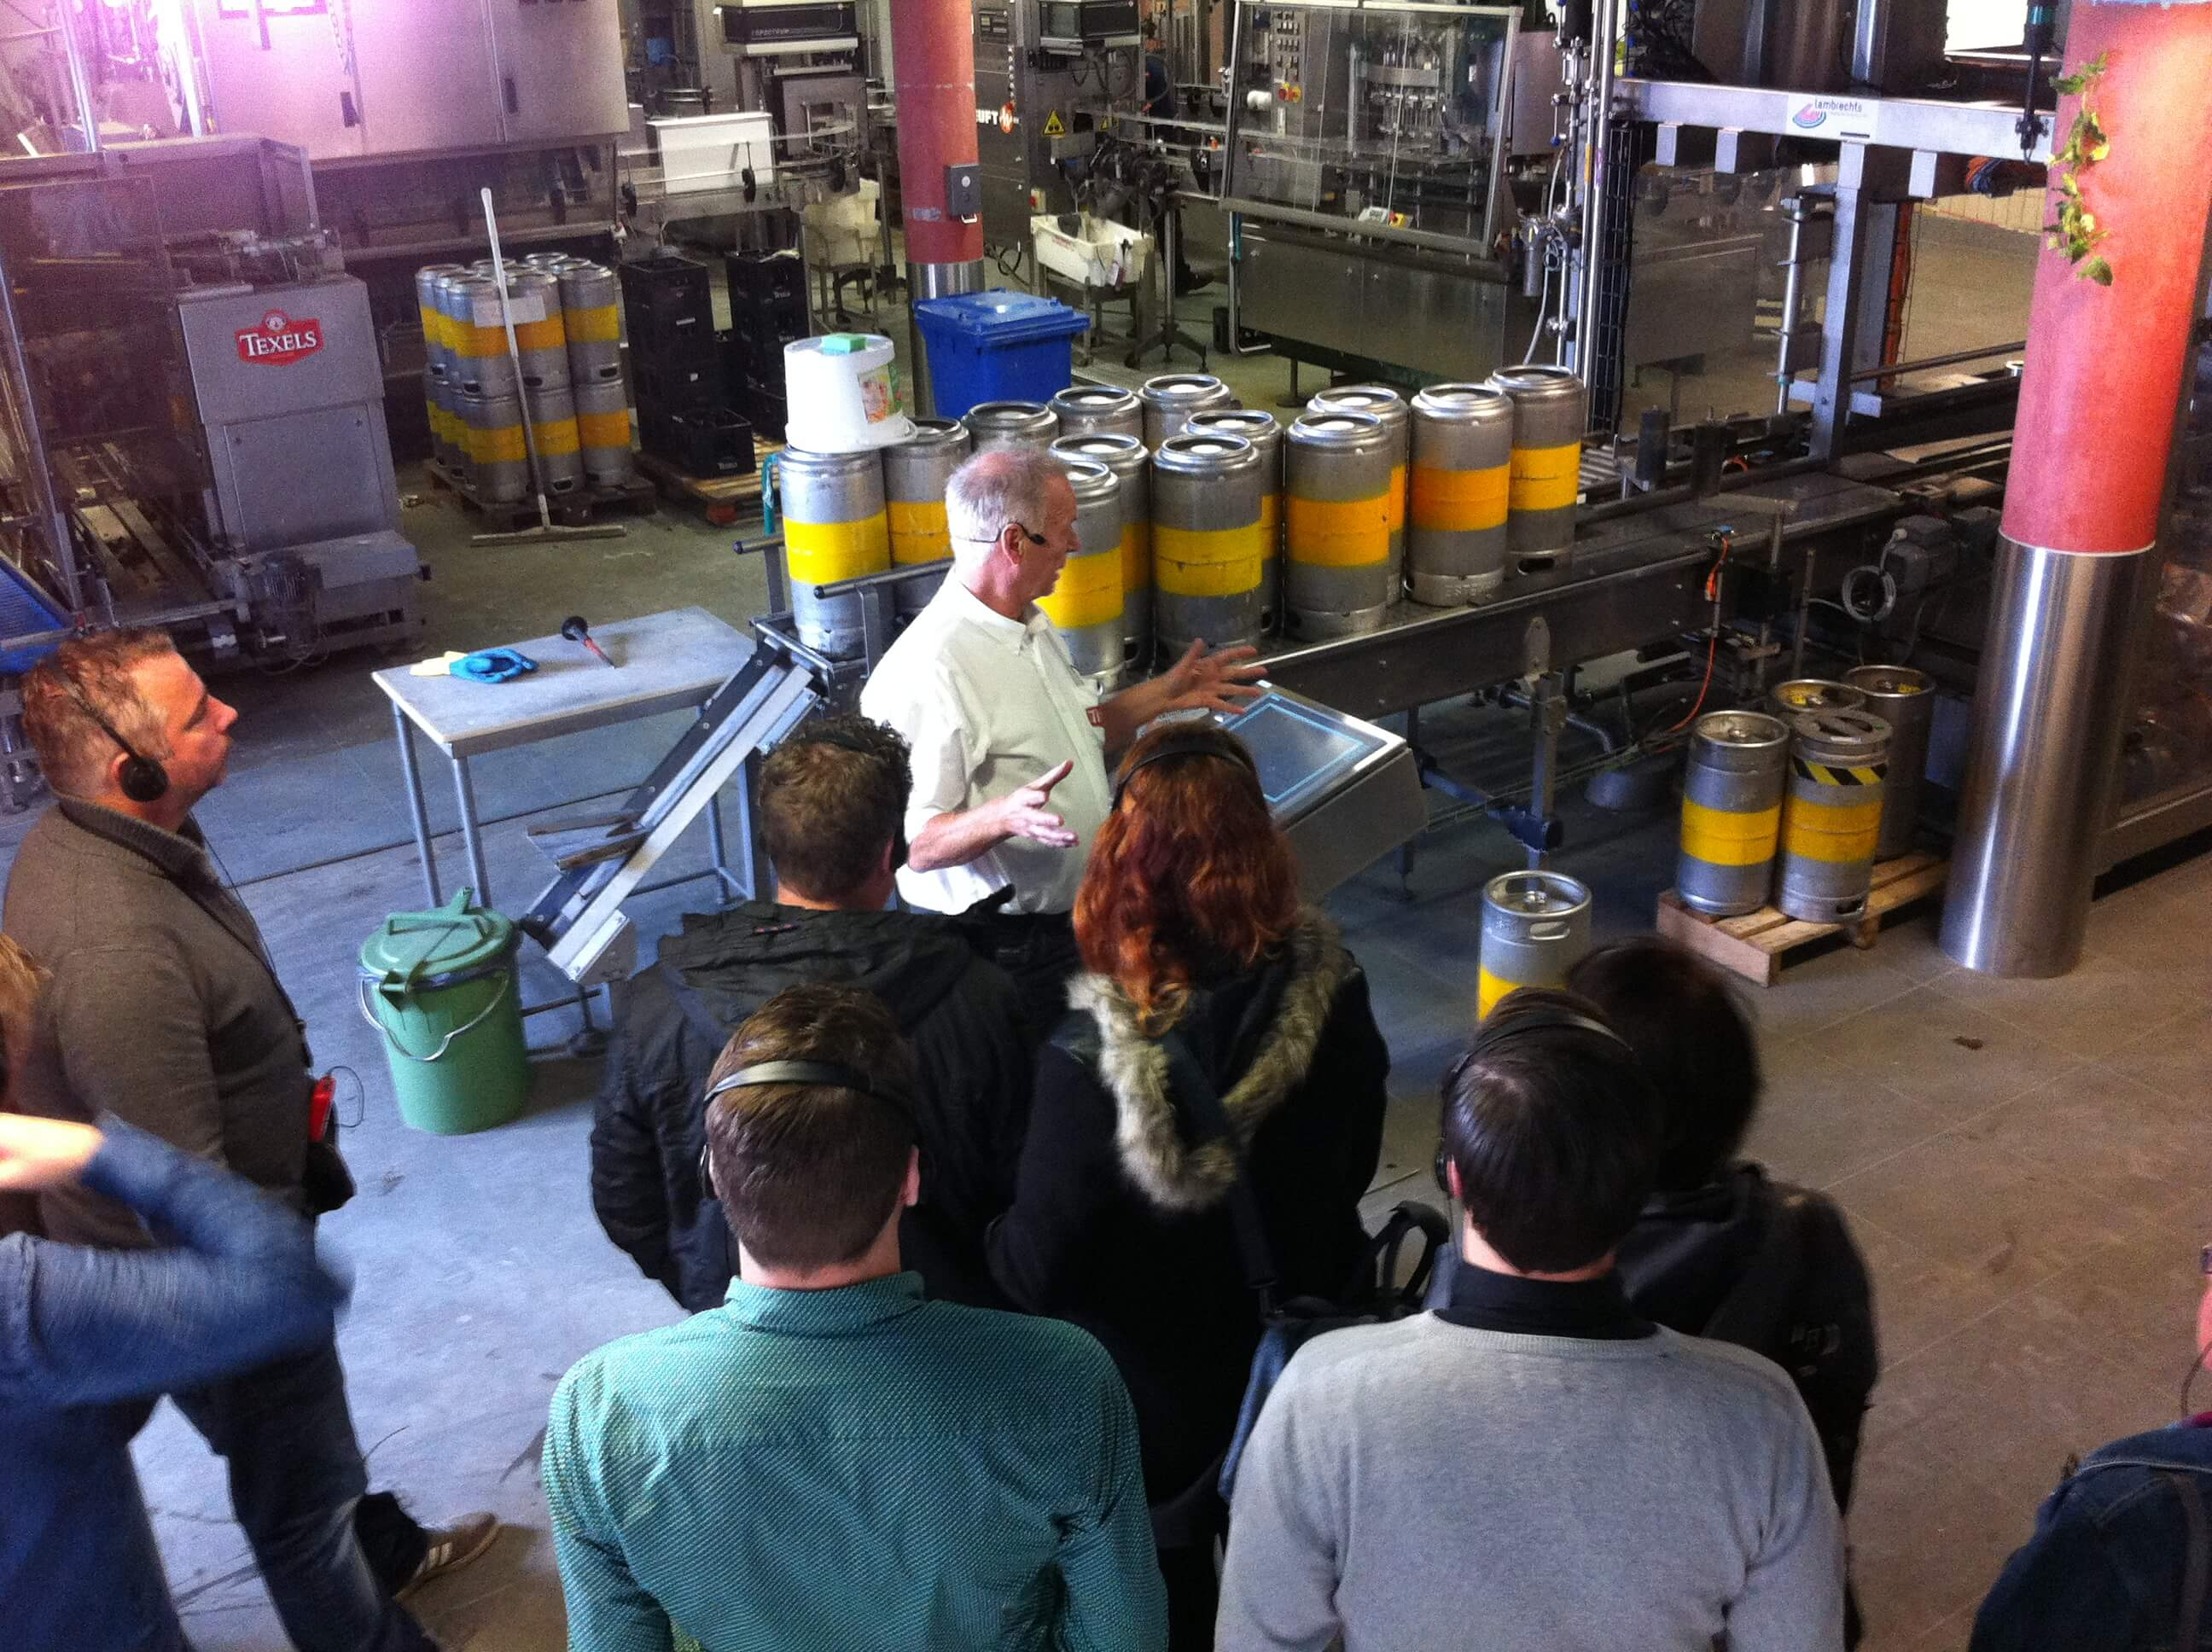 axitour-at-300-communicatie-systeem-texelse-bierbrouwerij-rondleiding